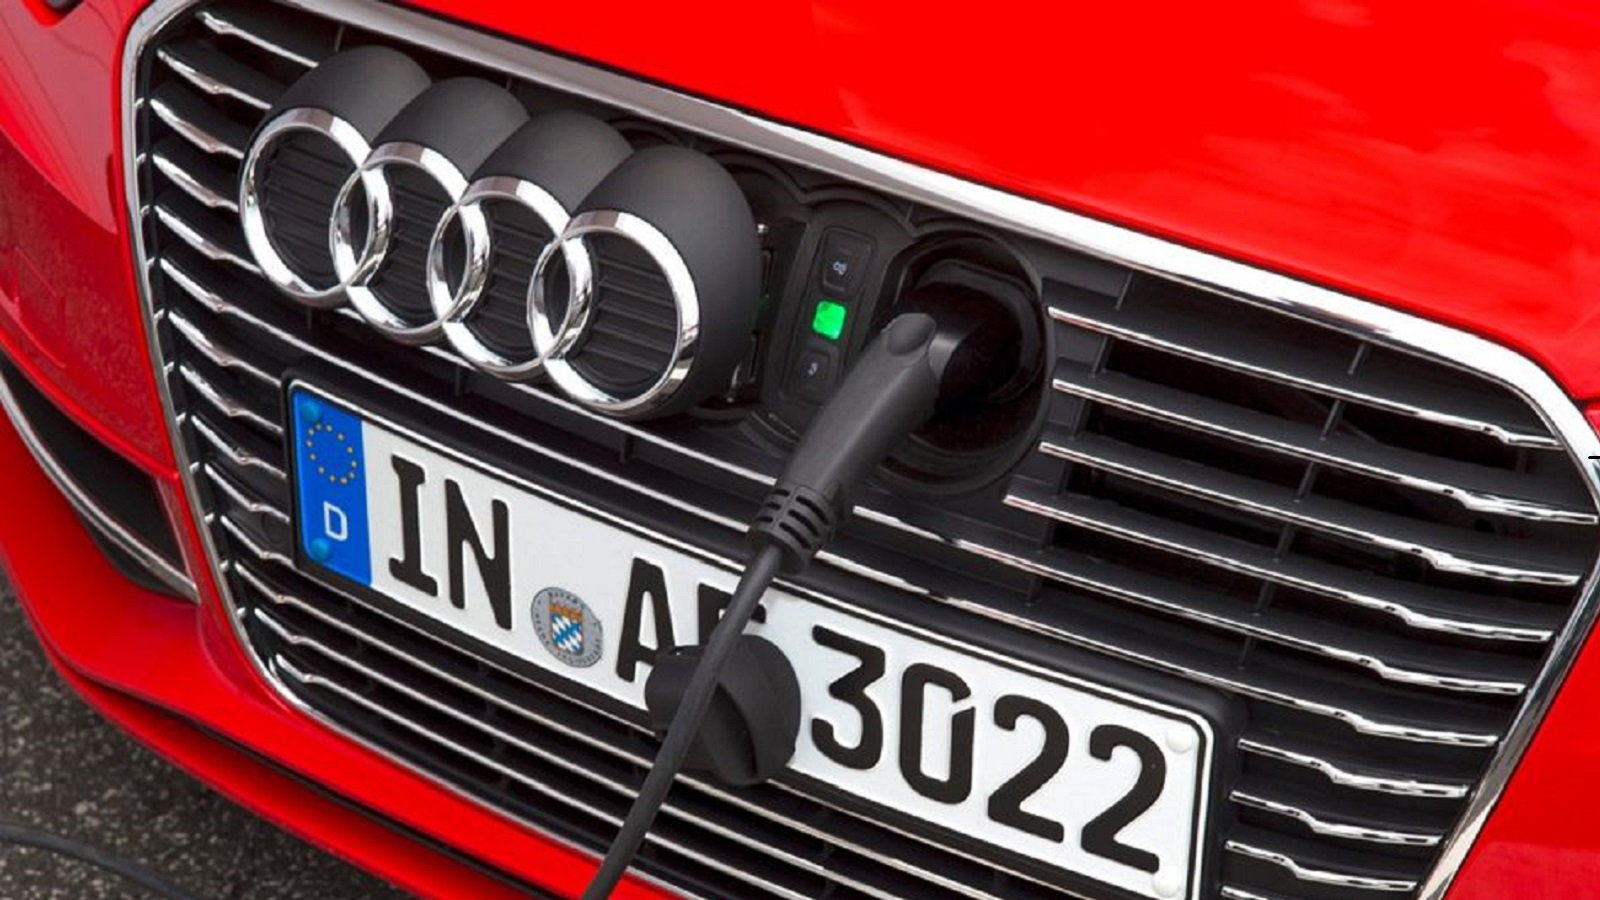 Audi's Smart Energy Network Gives as Well as Takes